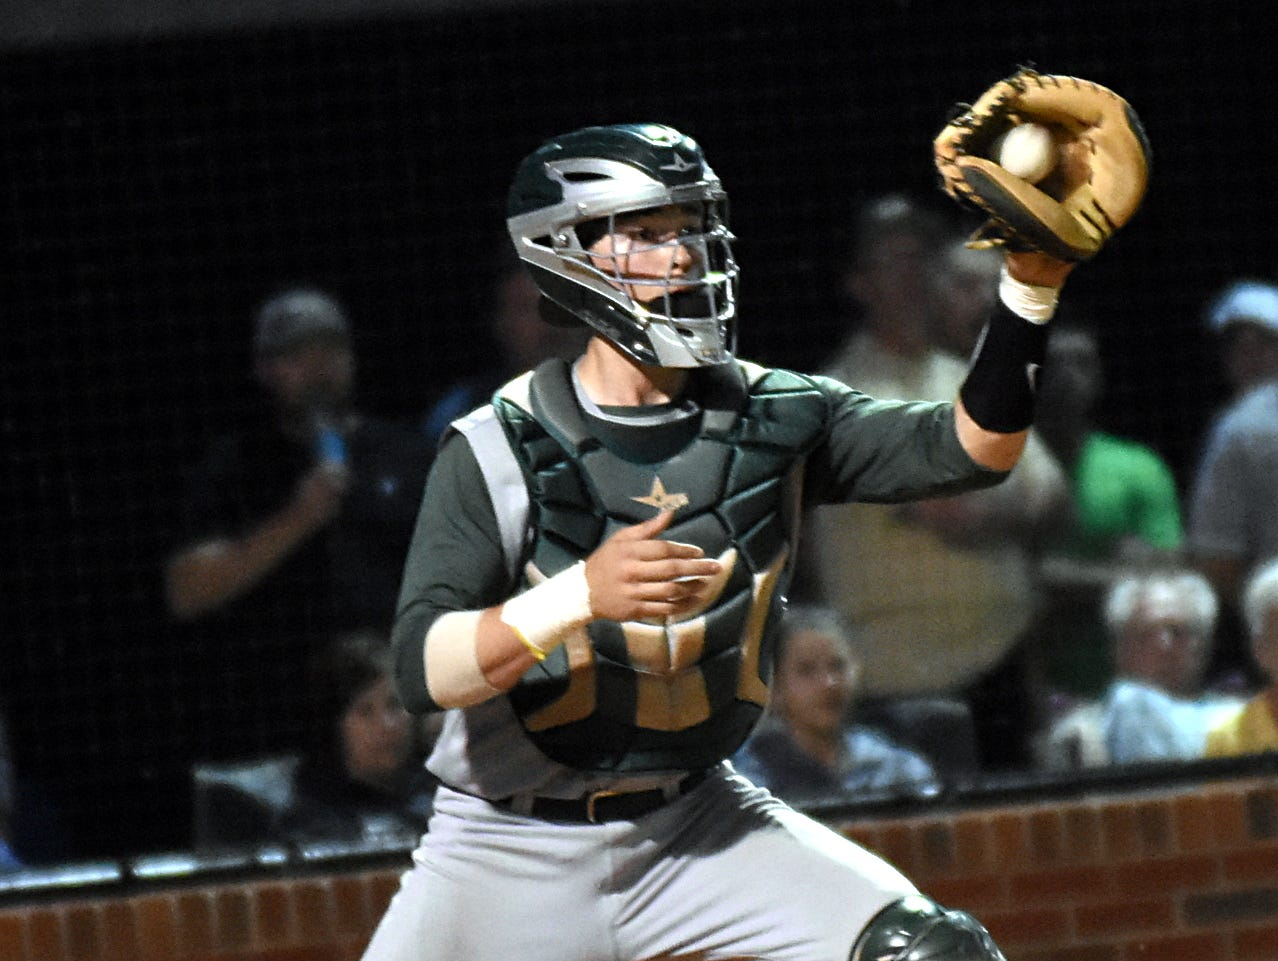 Gallatin High junior catcher Bailey Russell receives a fifth-inning throw that resulted in a forceout at home plate.